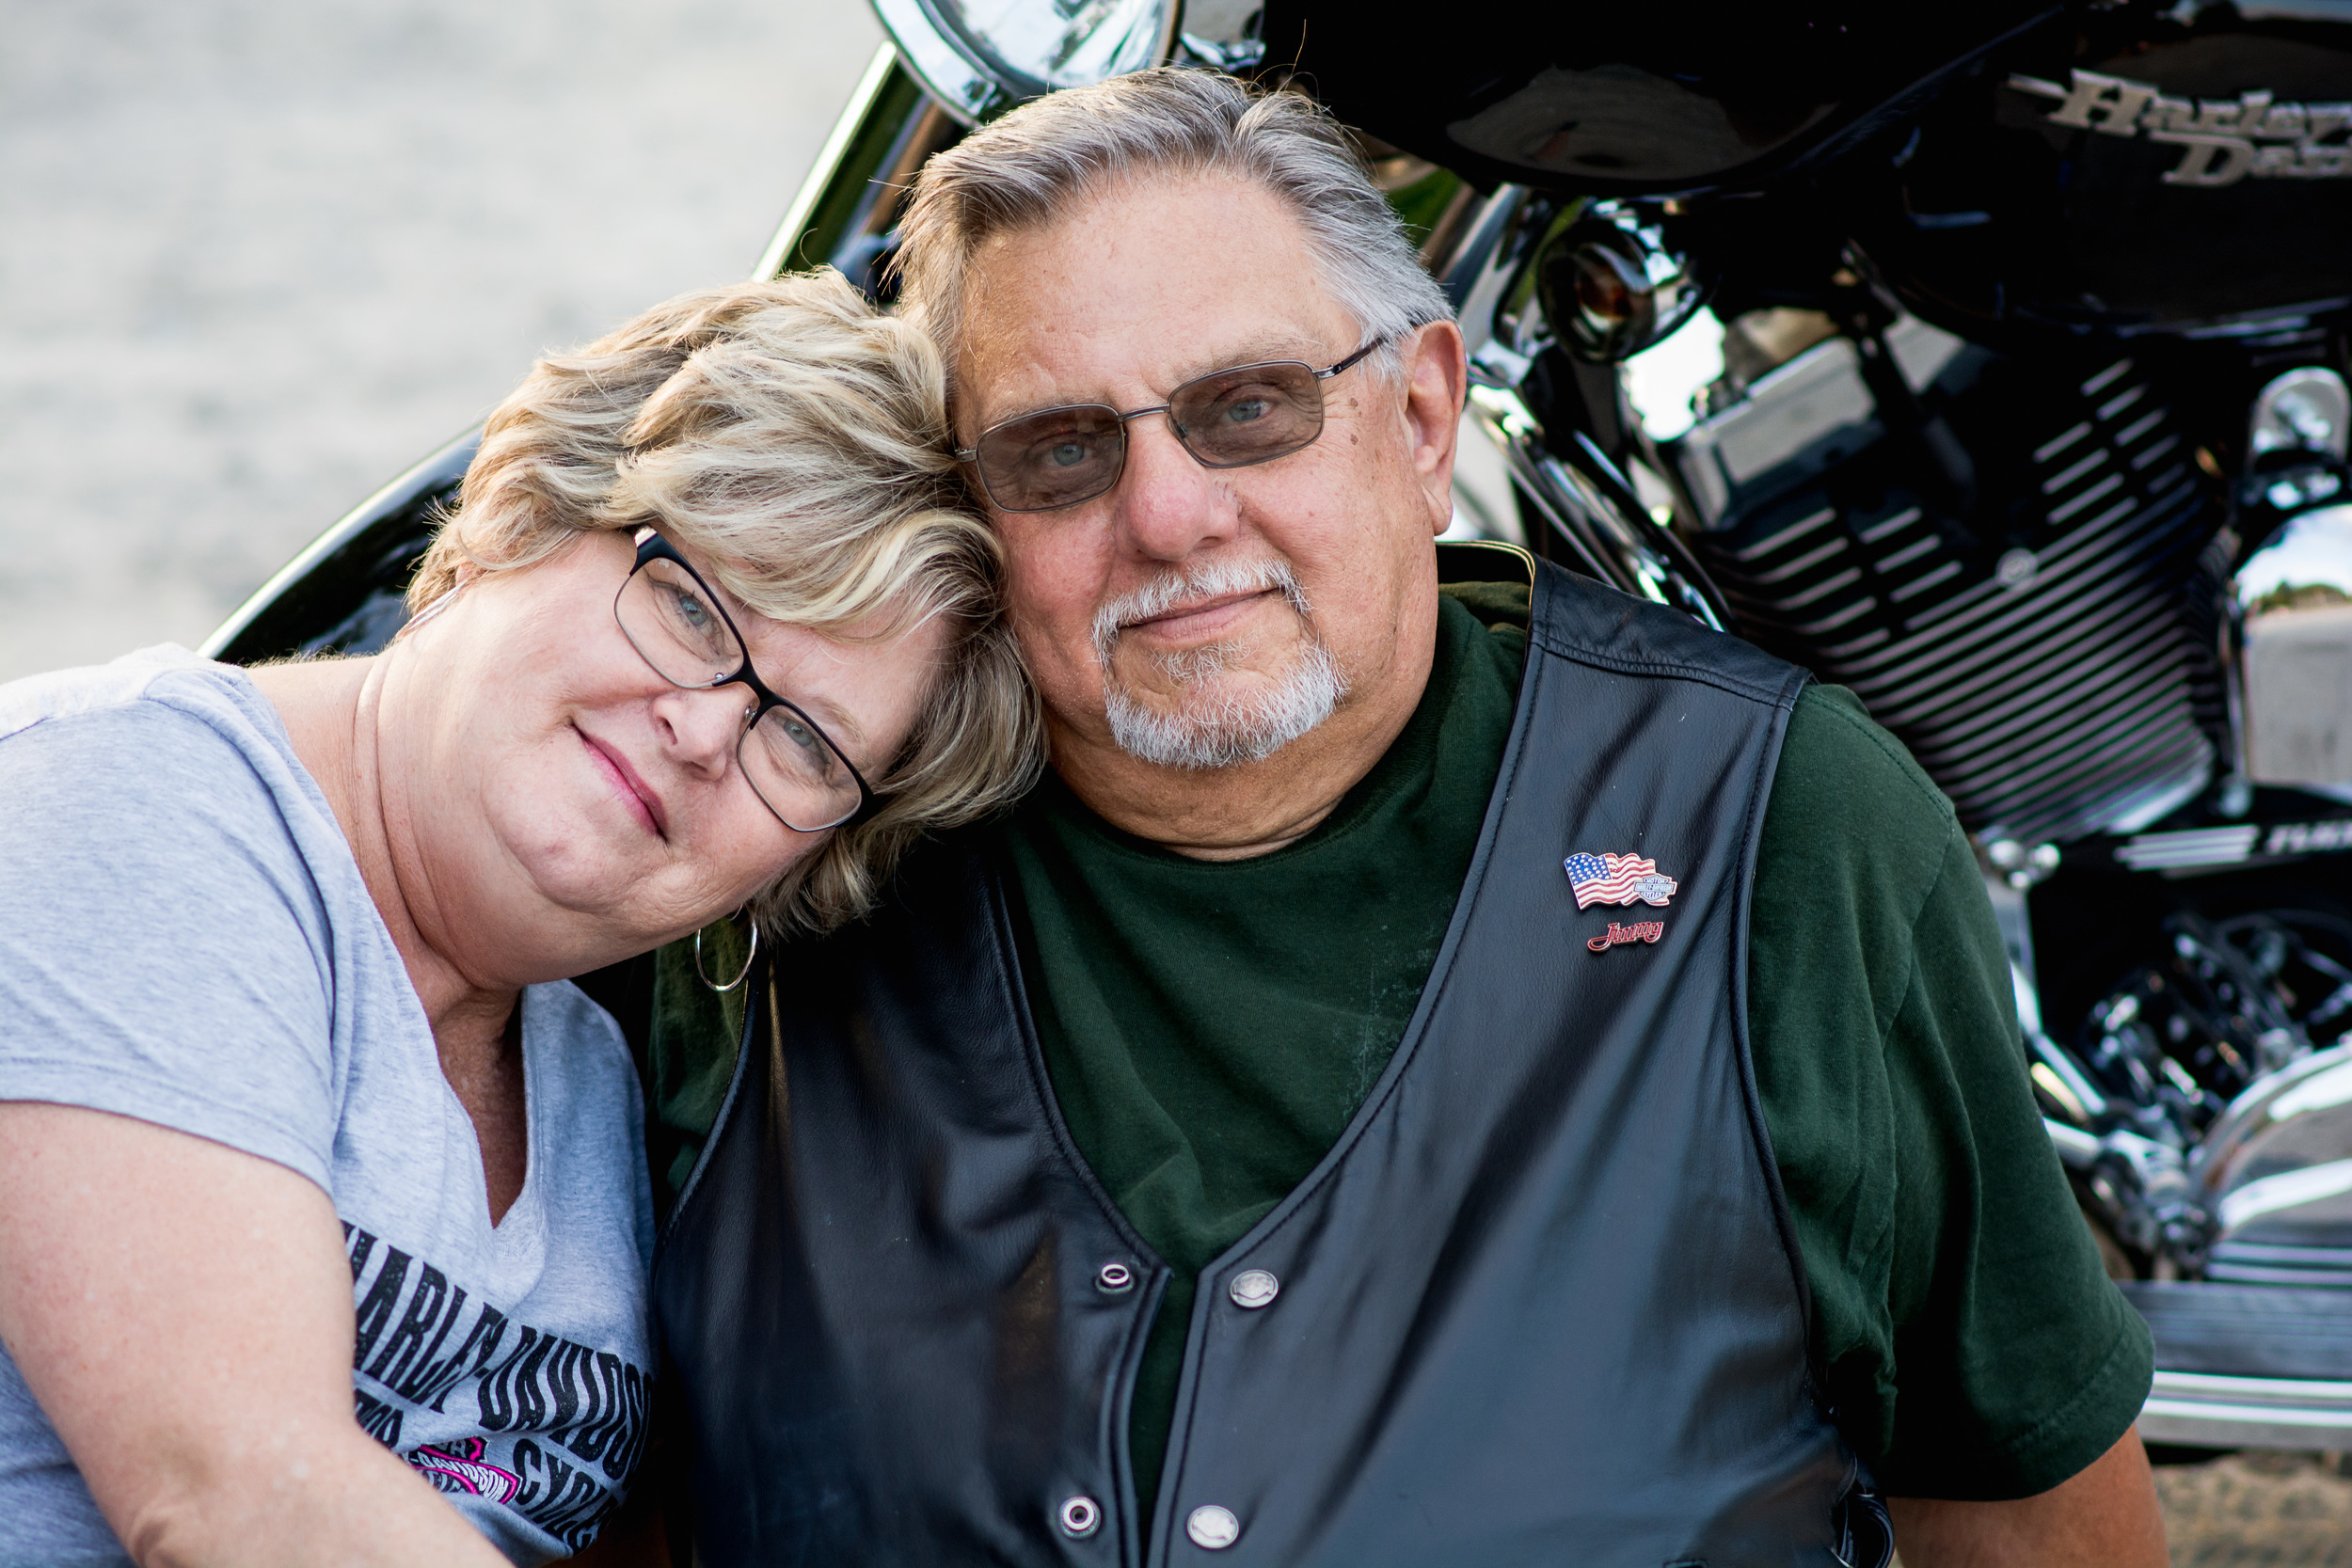 Amanda Noel Photography-couples-lifestyle-mototorcycle-sunset-springfield-ohio